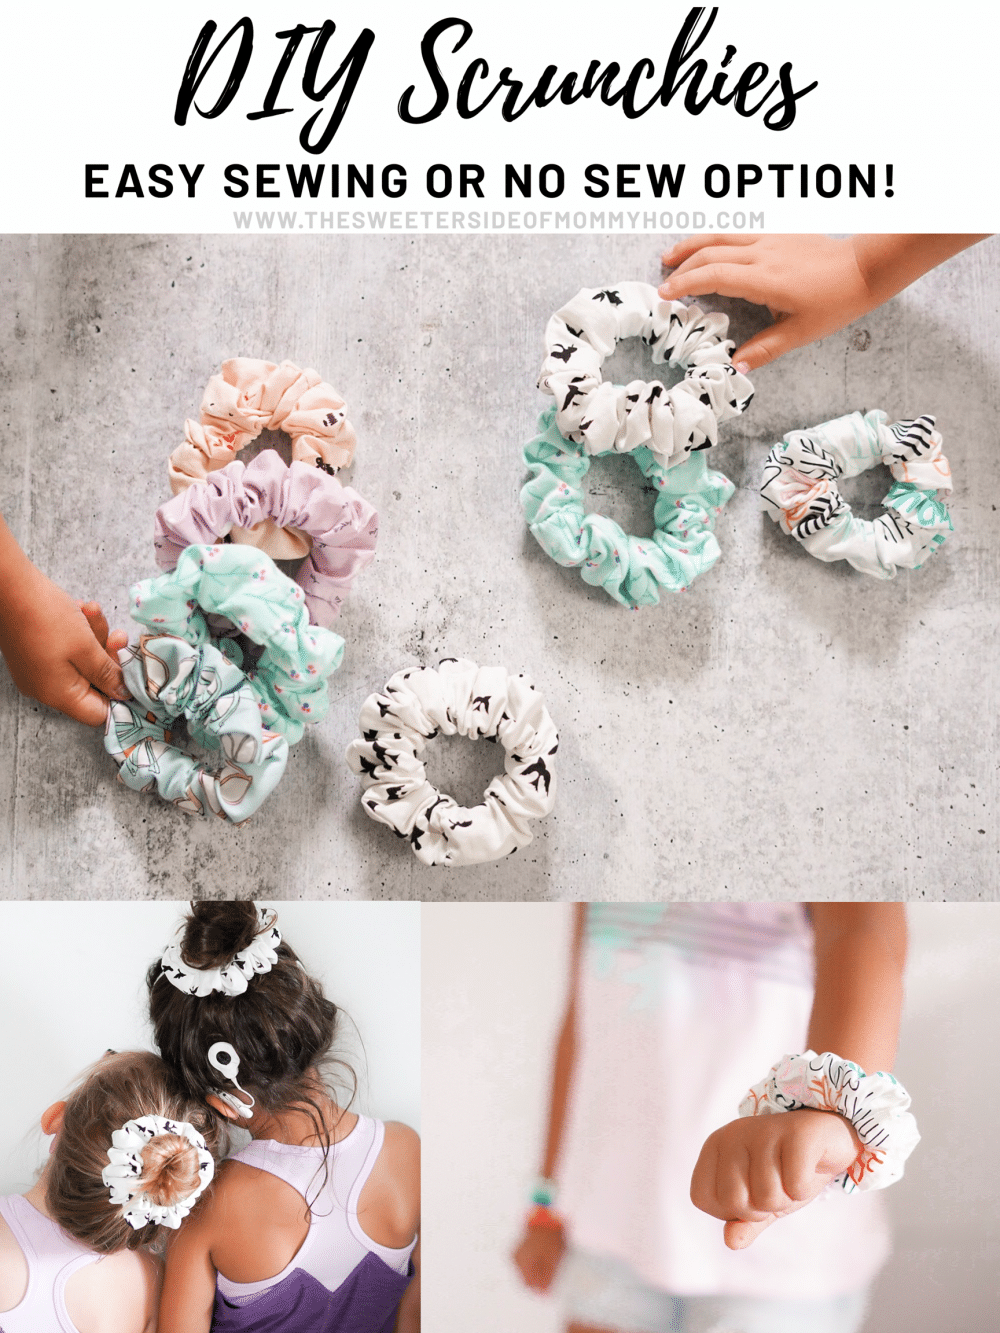 DIY Easy Scrunchies